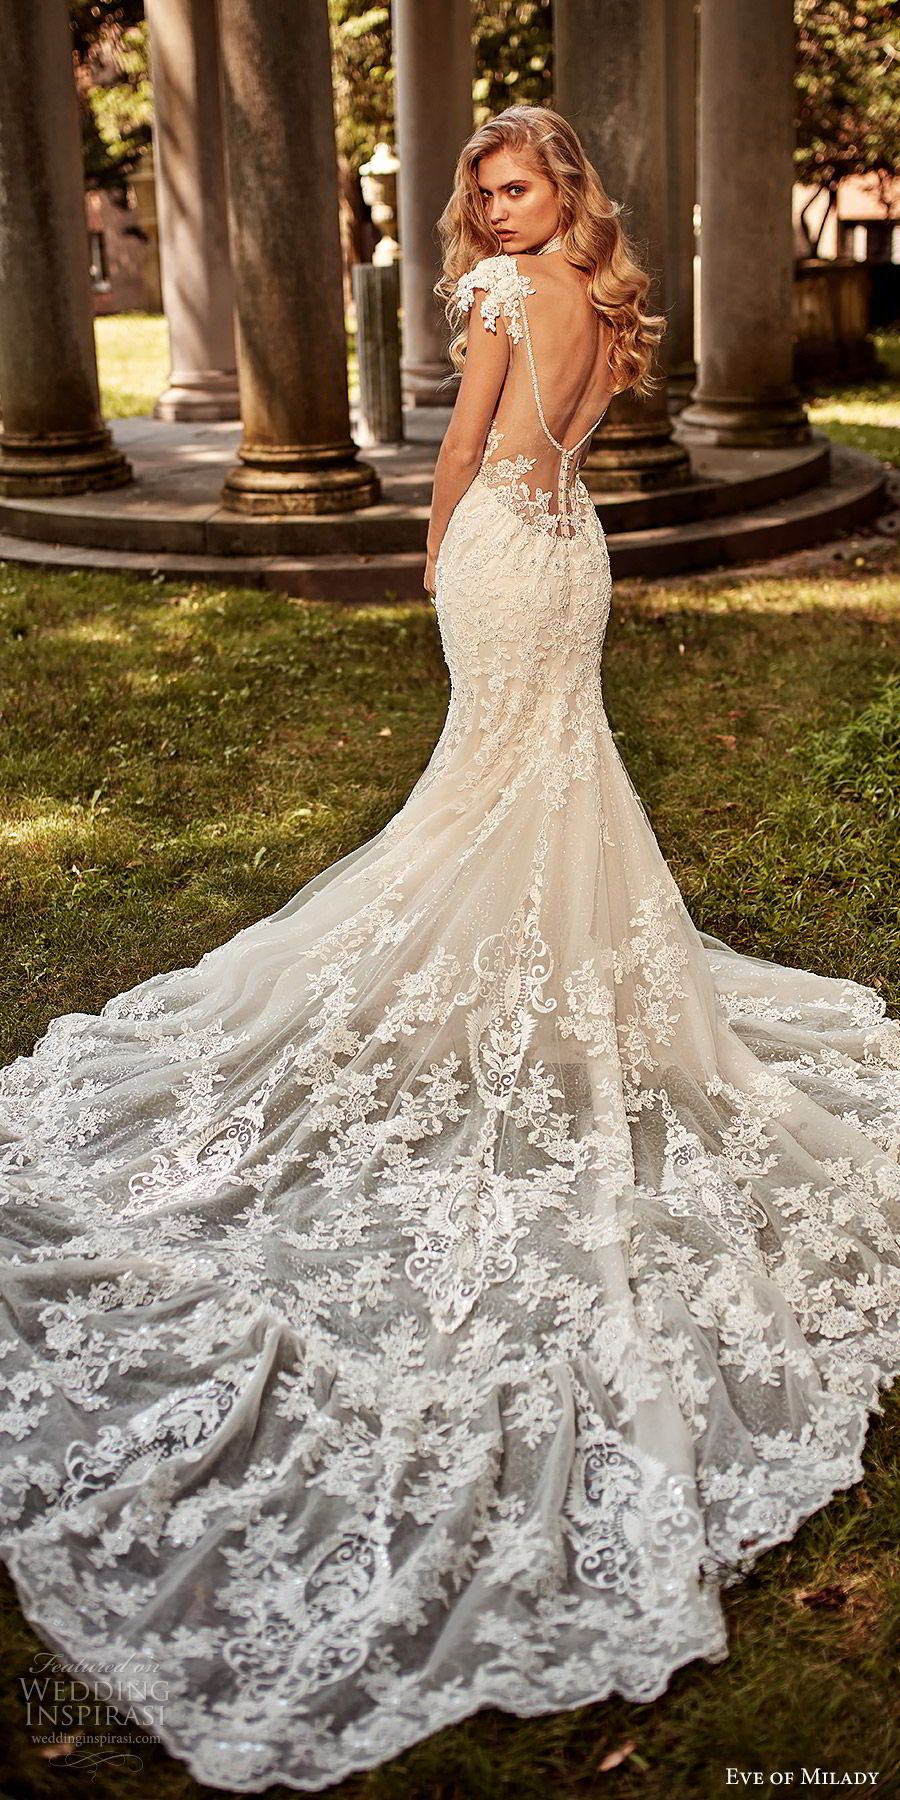 7f39ed6c3c292 Eve of Milady Boutique Spring 2018 Wedding Dresses in 2019 ...